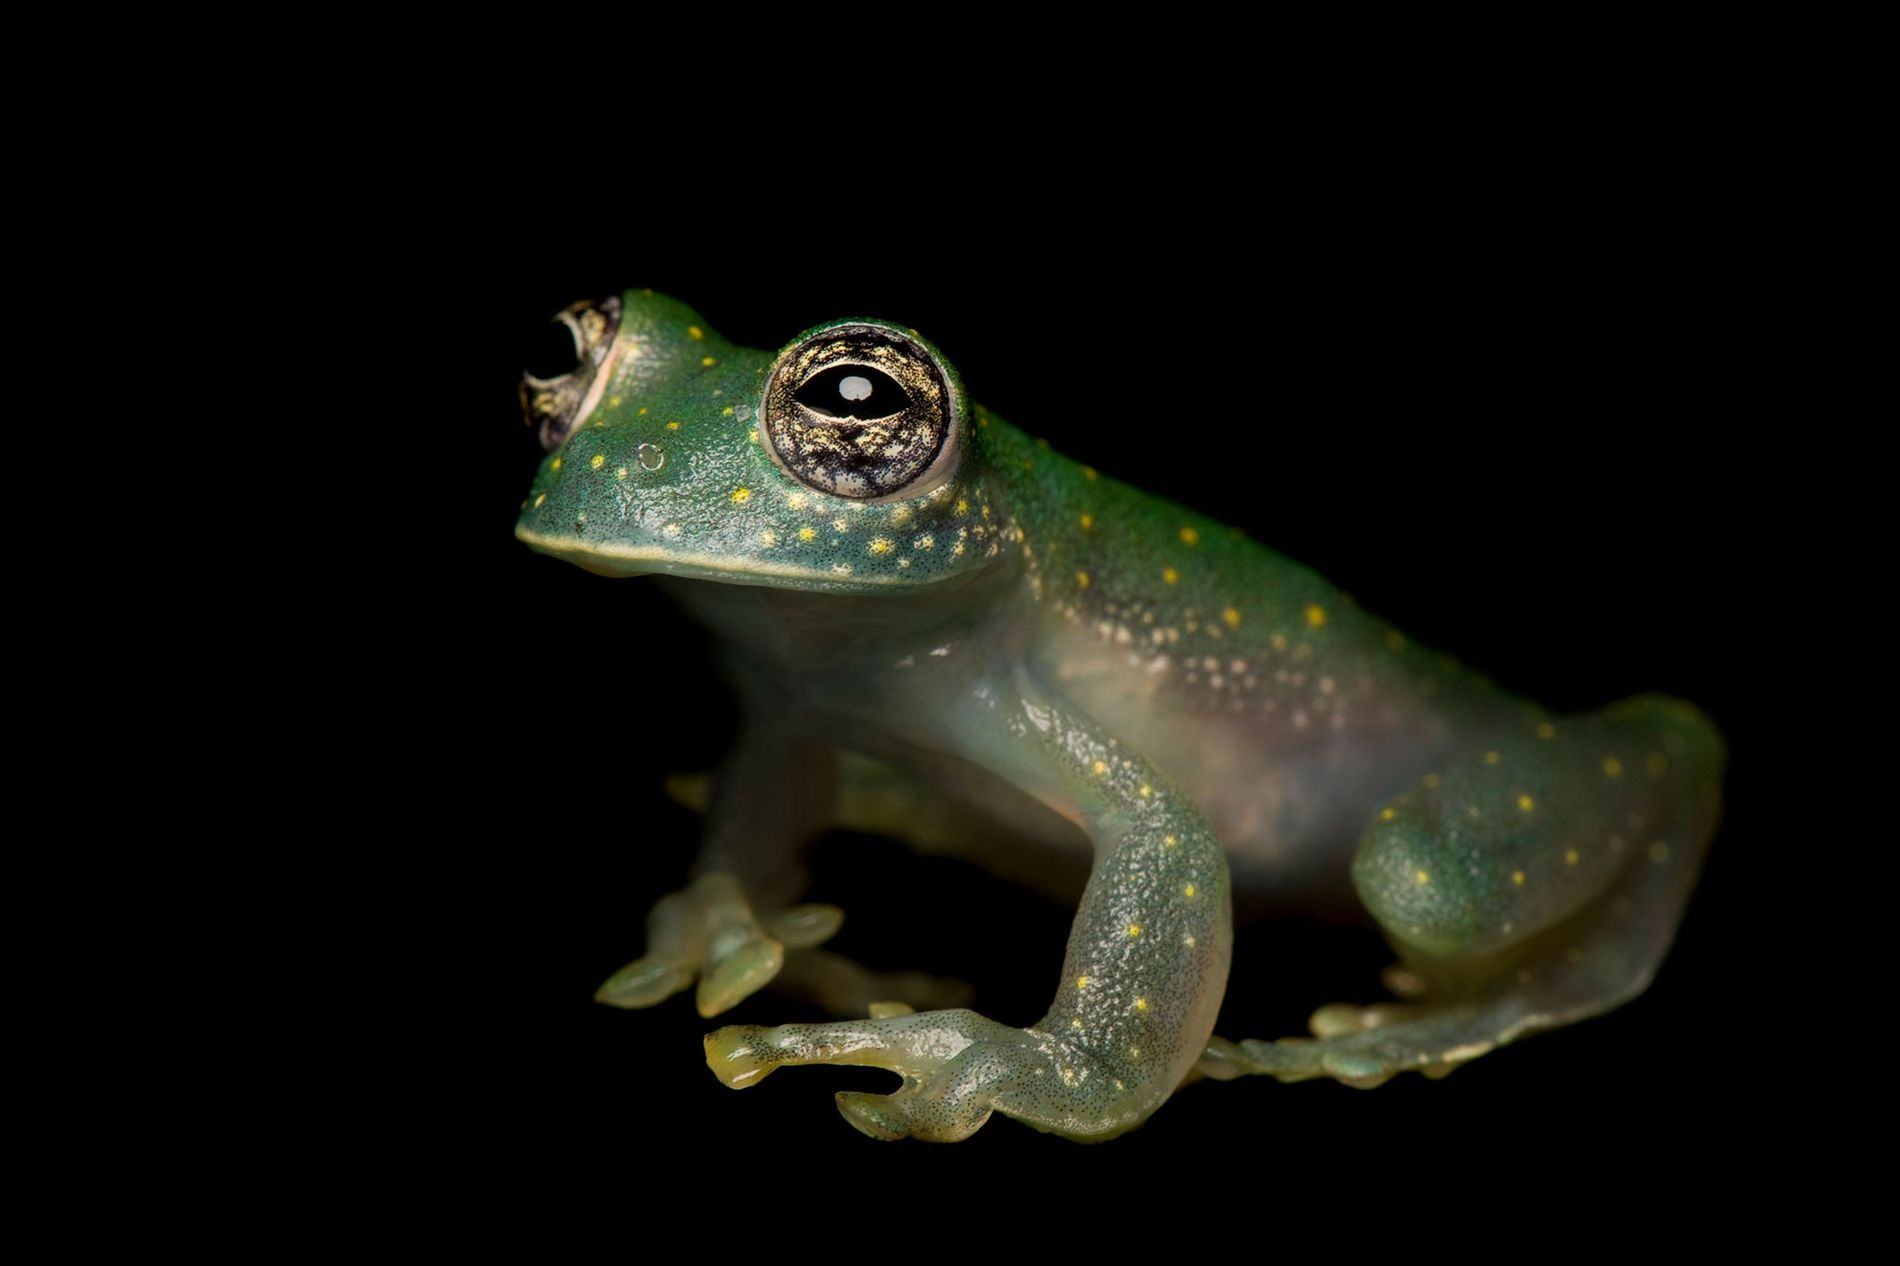 Glass frogs were among the more than 500 species considered for protections at this year's CITES international wildlife trade meeting in Geneva.